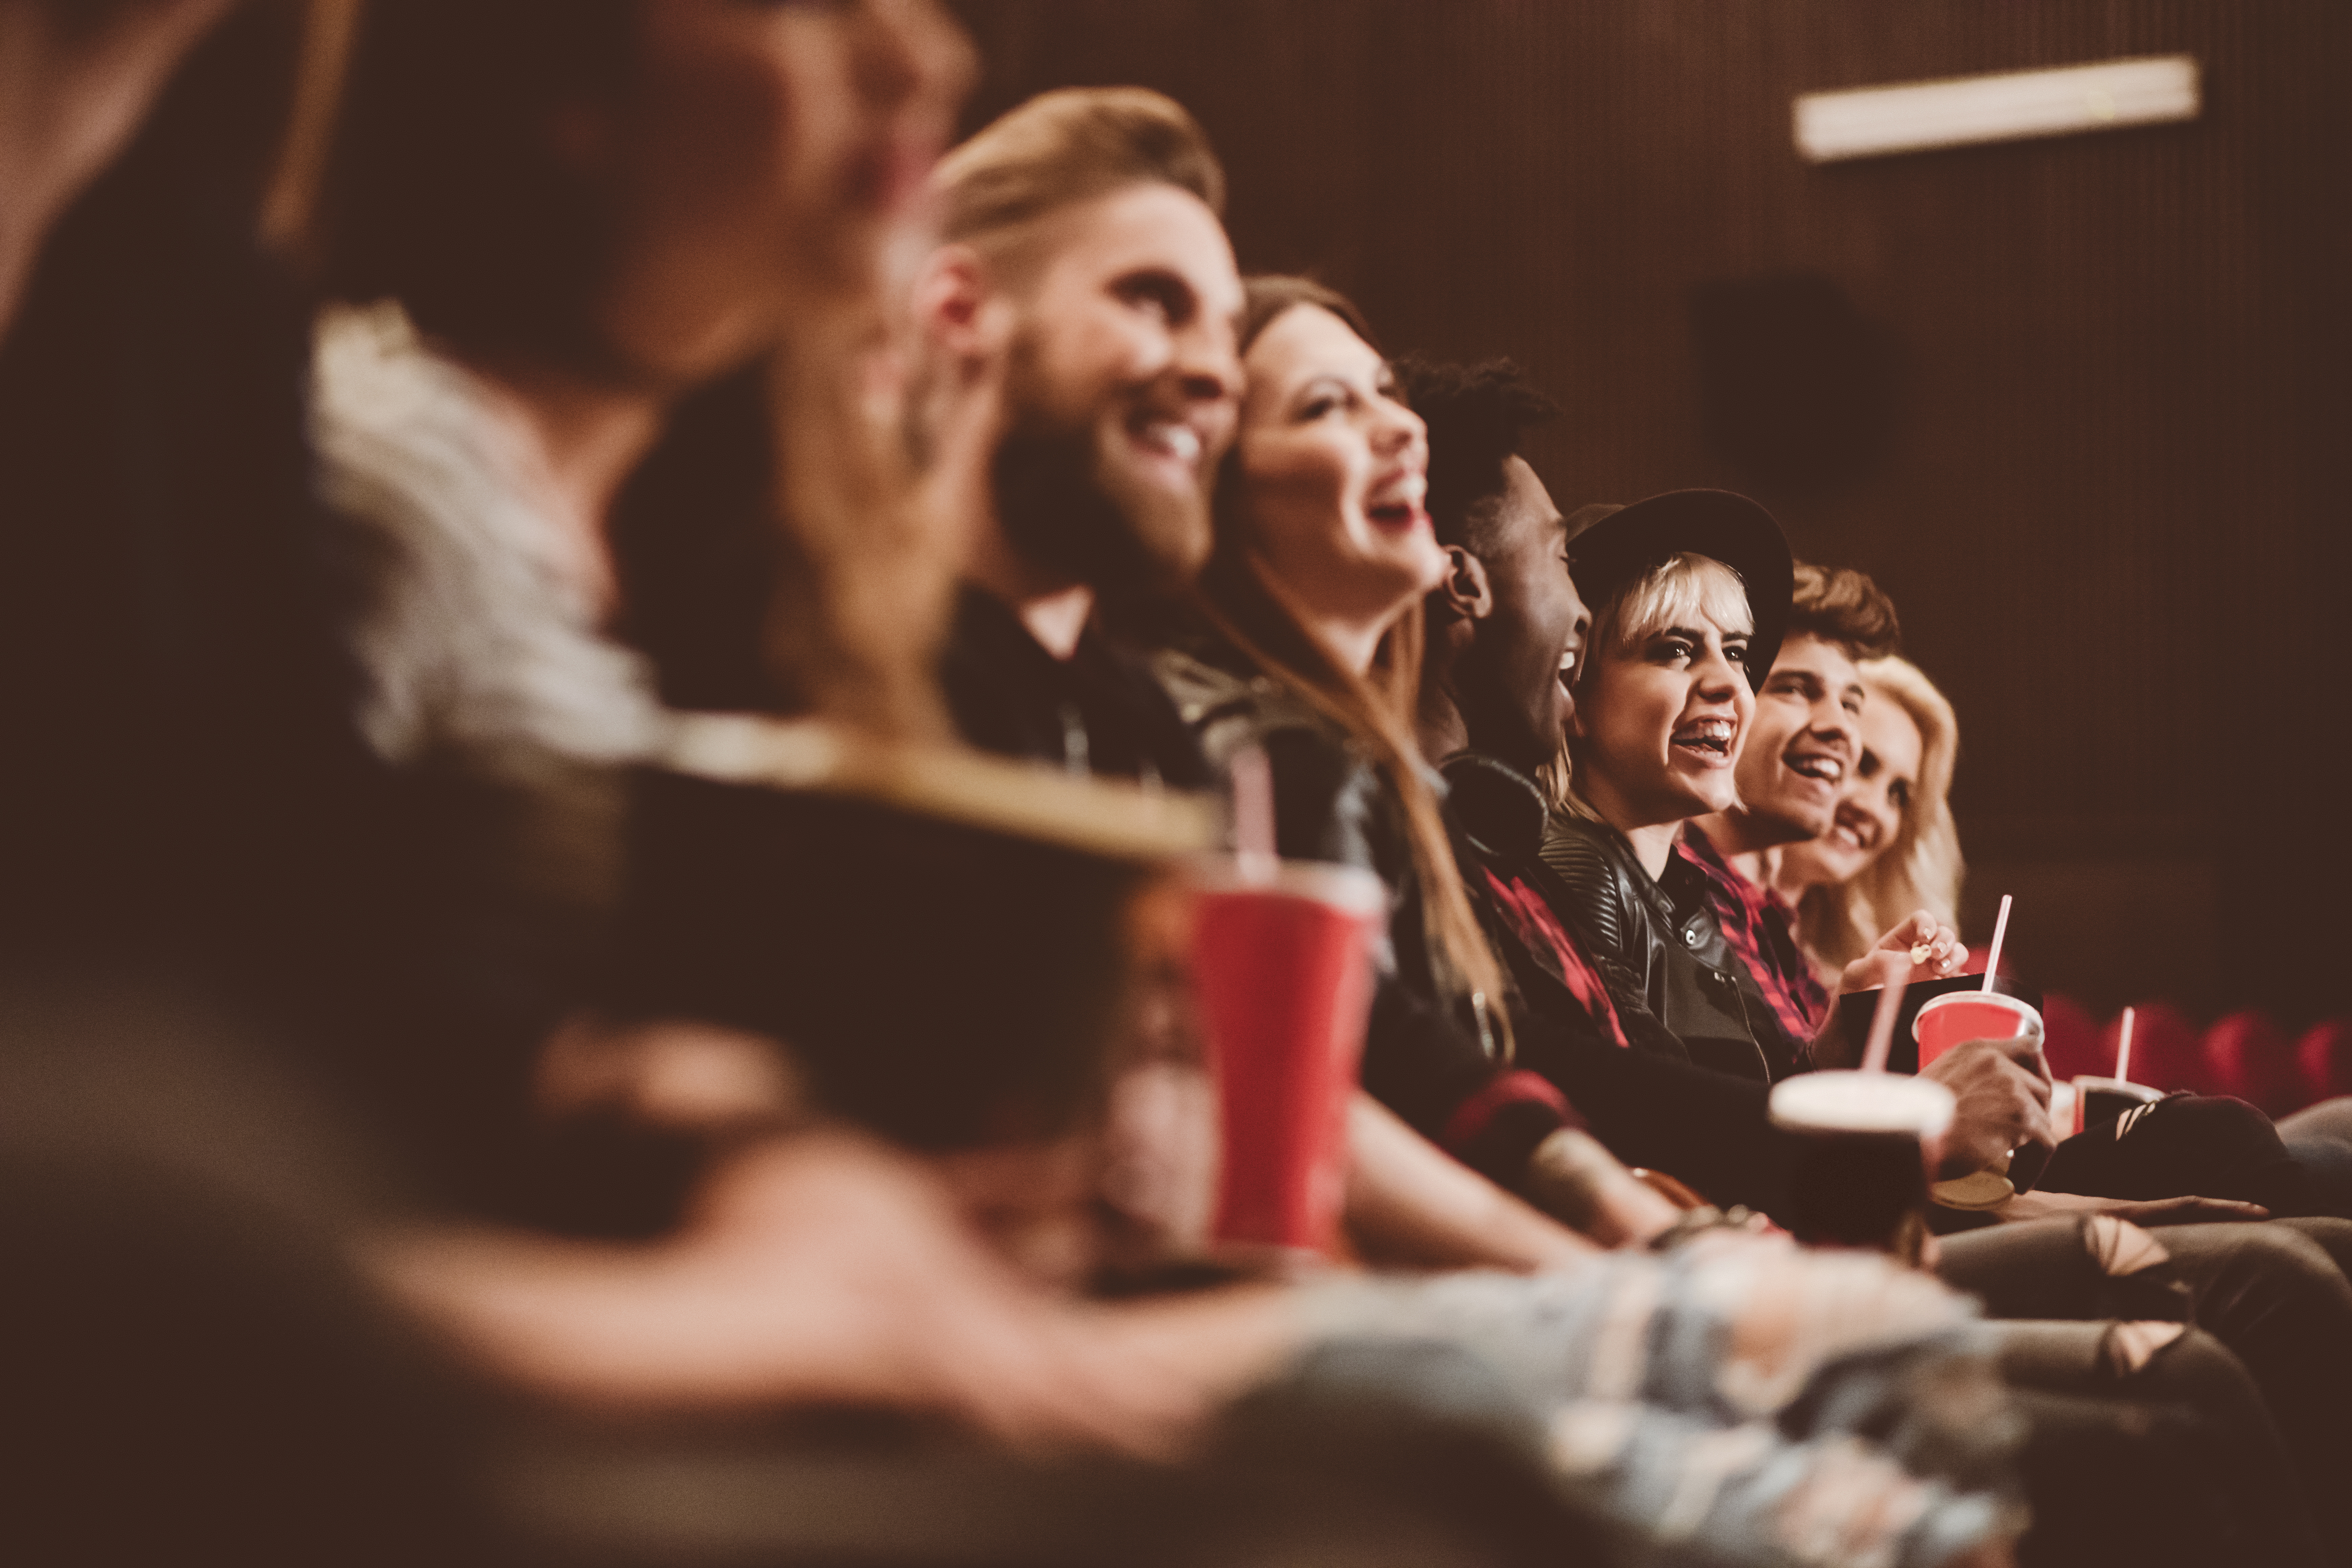 Group of people in the movie theater. Siede view, close up of hands, legs and drinks.